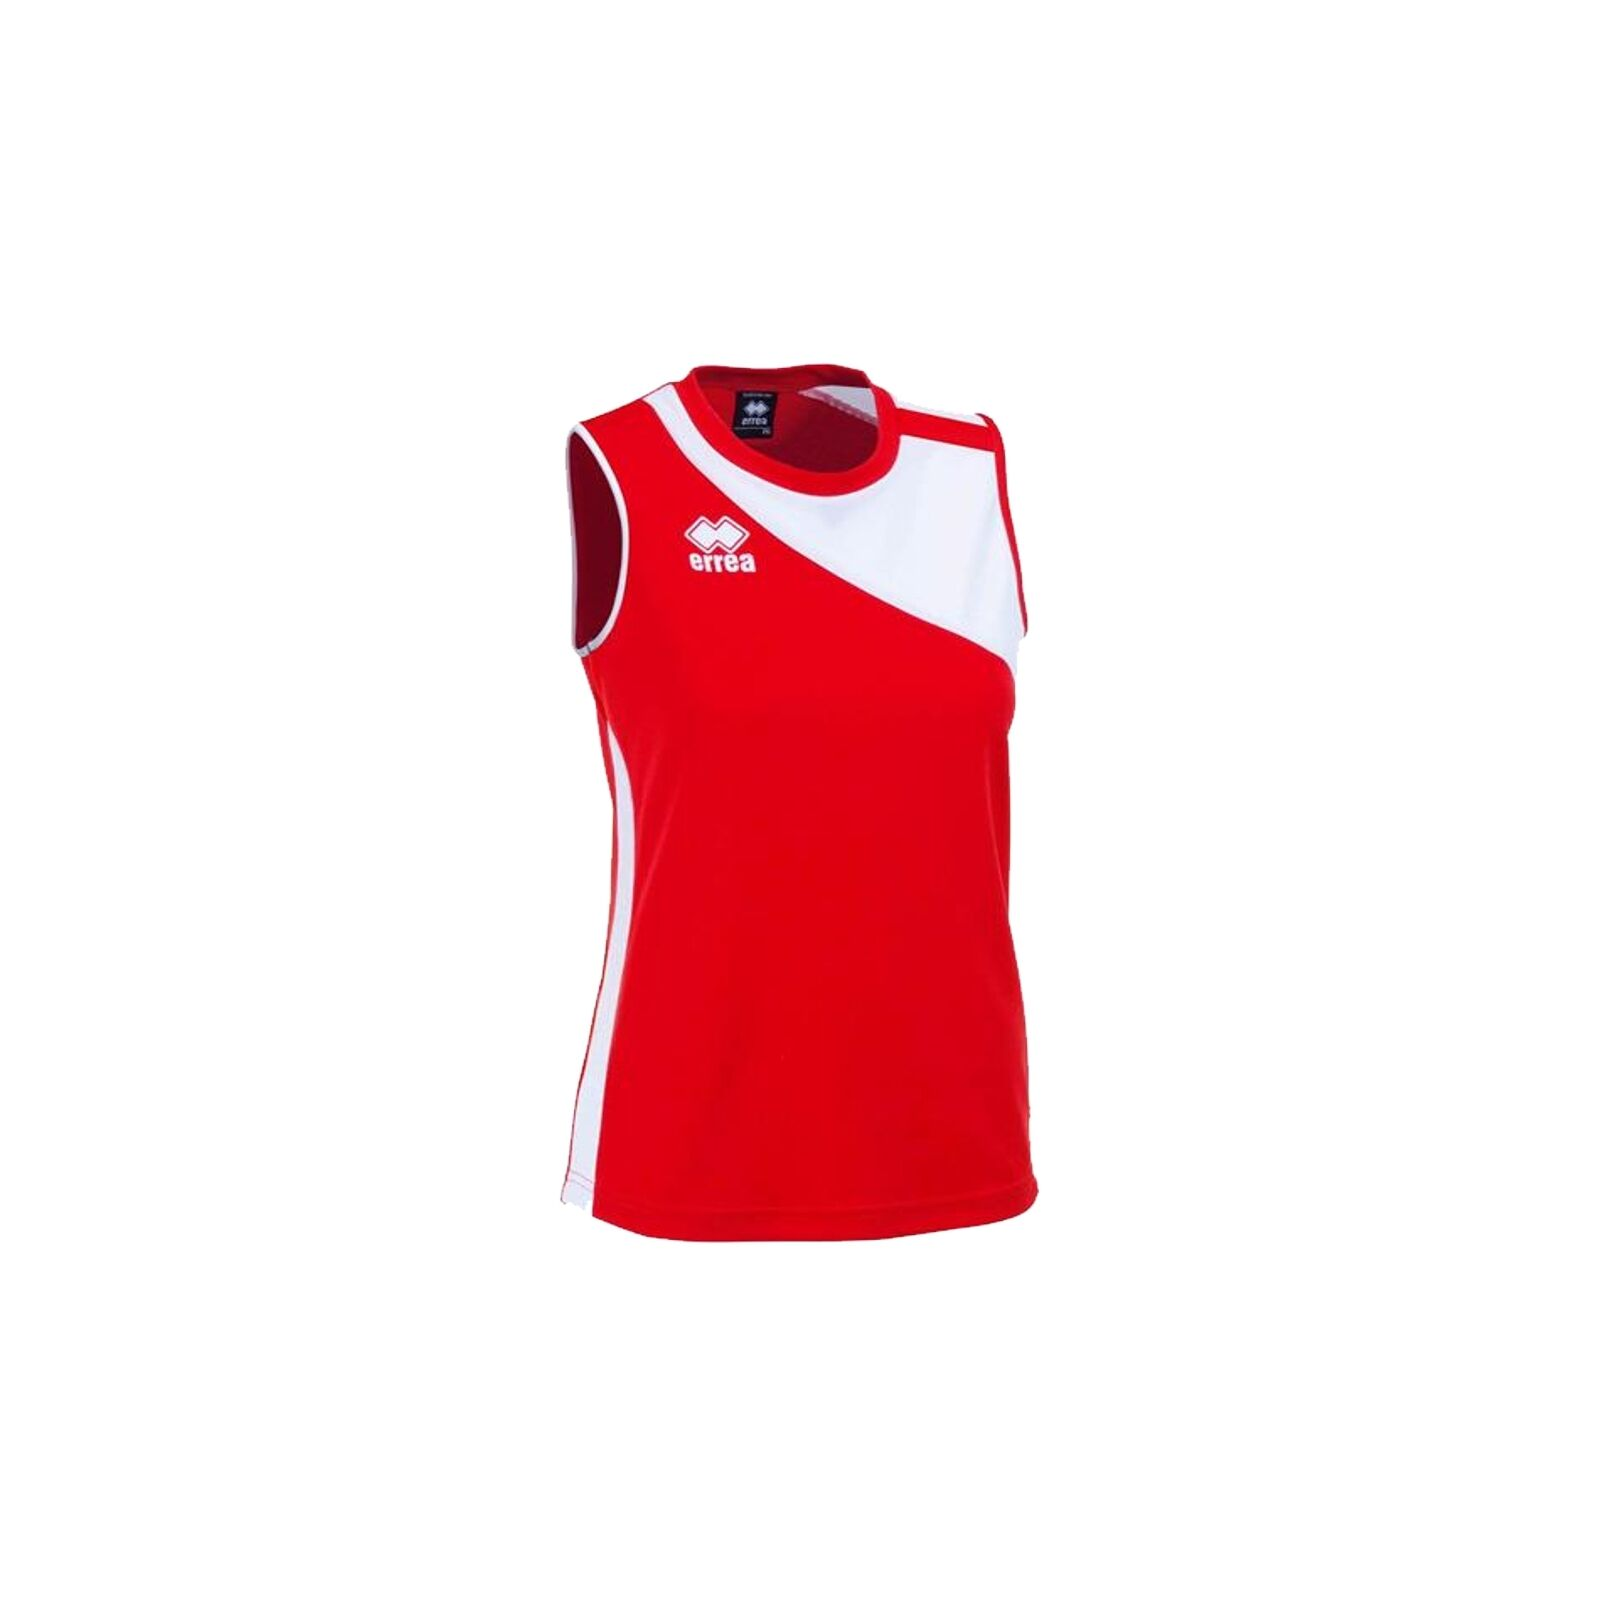 ERREA AMAZON WOMENS VOLLEYBALL VESTS - RED WHITE - XS - SET OF 12